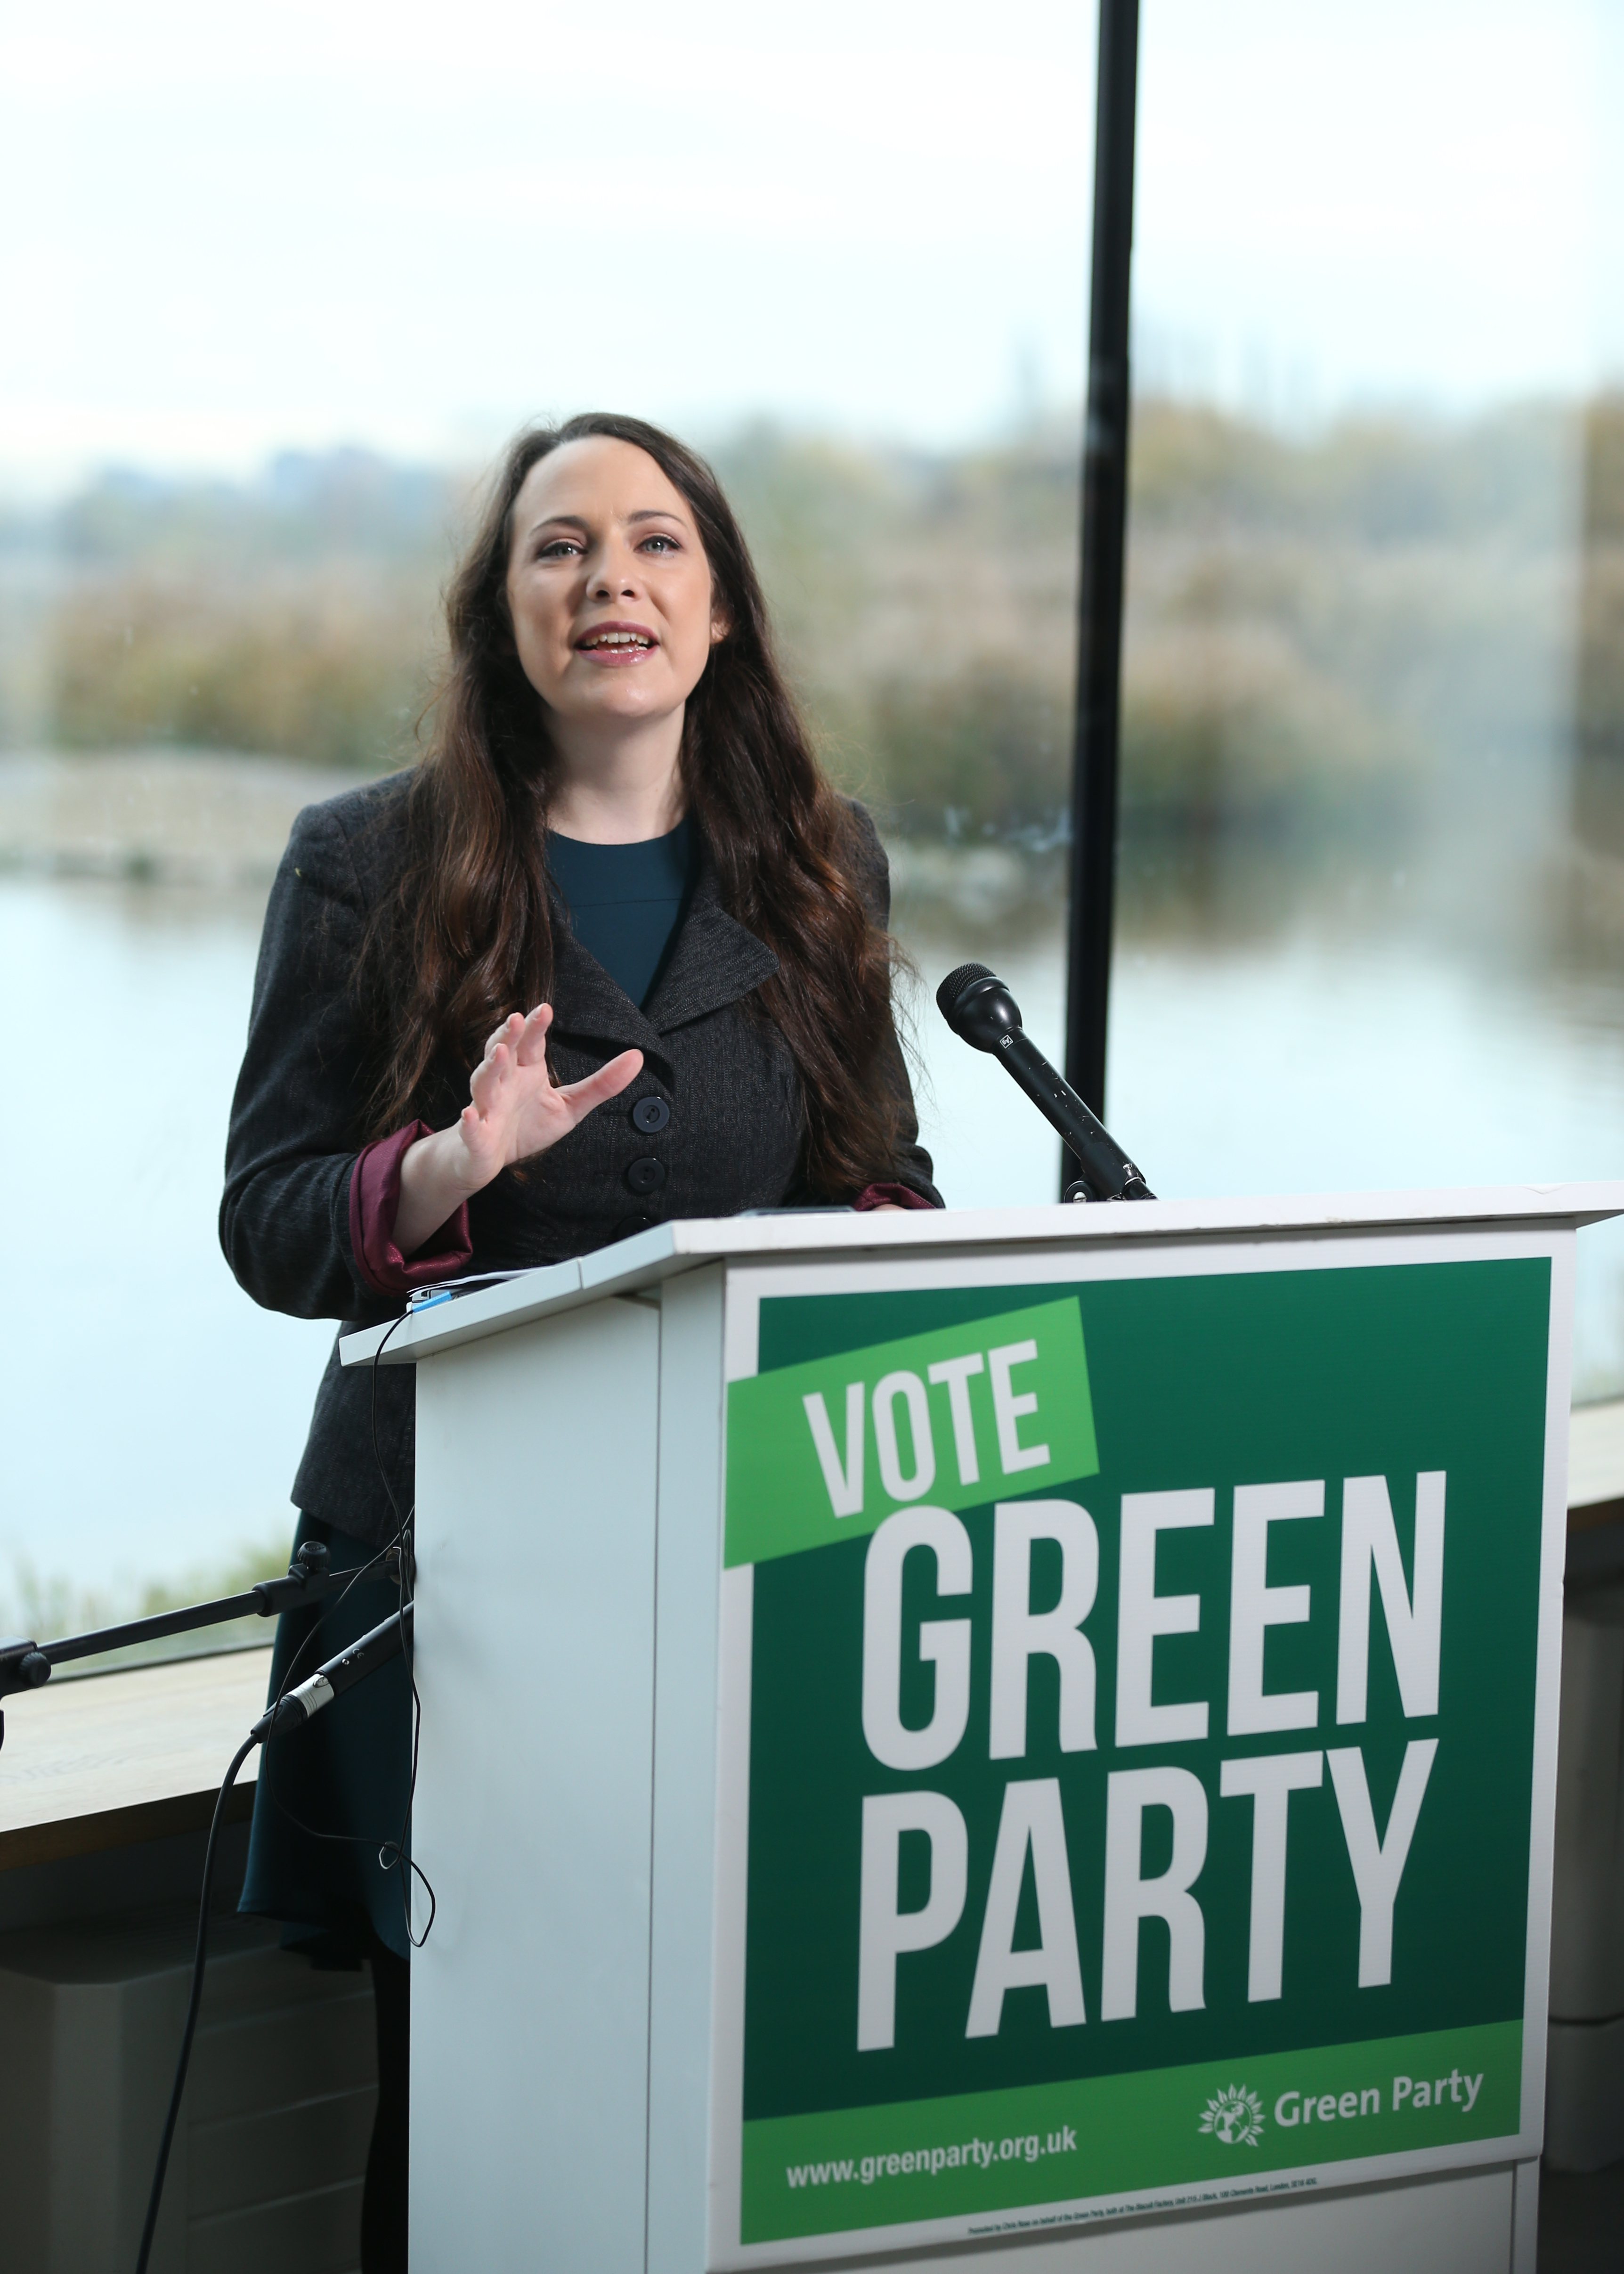 Green Party Deputy leader Amelia Womack at the Observatory, London Wetlands Centre, for the launch of the Green Party manifesto for the 2019 General Election. PA Photo. Picture date: Tuesday November 19,2019. See PA story POLITICS Election. Photo credit should read: Isabel Infantes/PA Wire